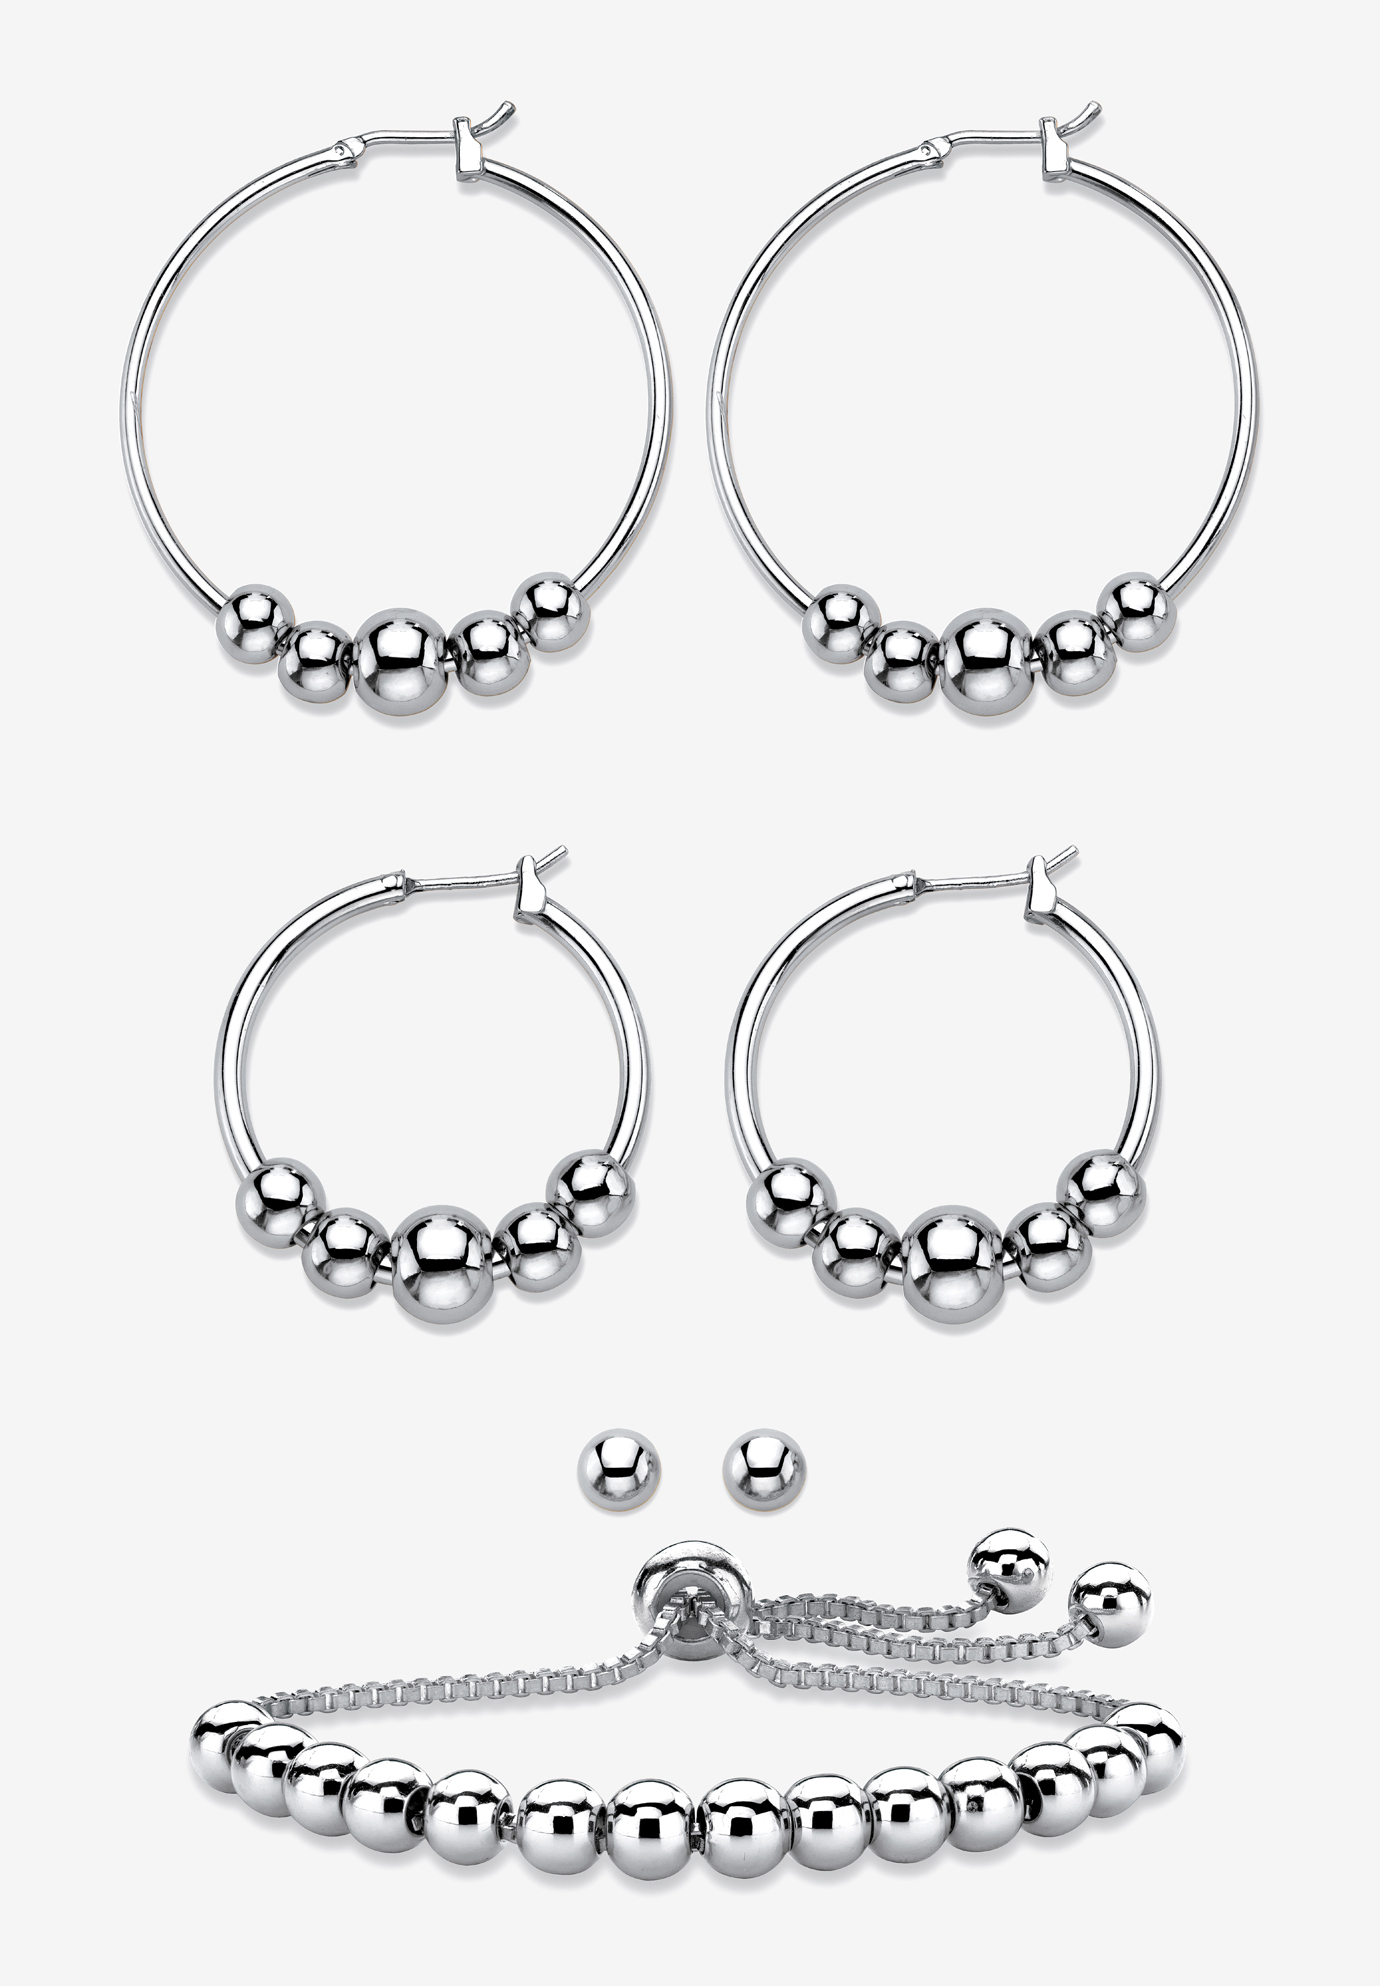 4-Piece Beaded Earrings and Bracelet Set in Silvertone, SILVER